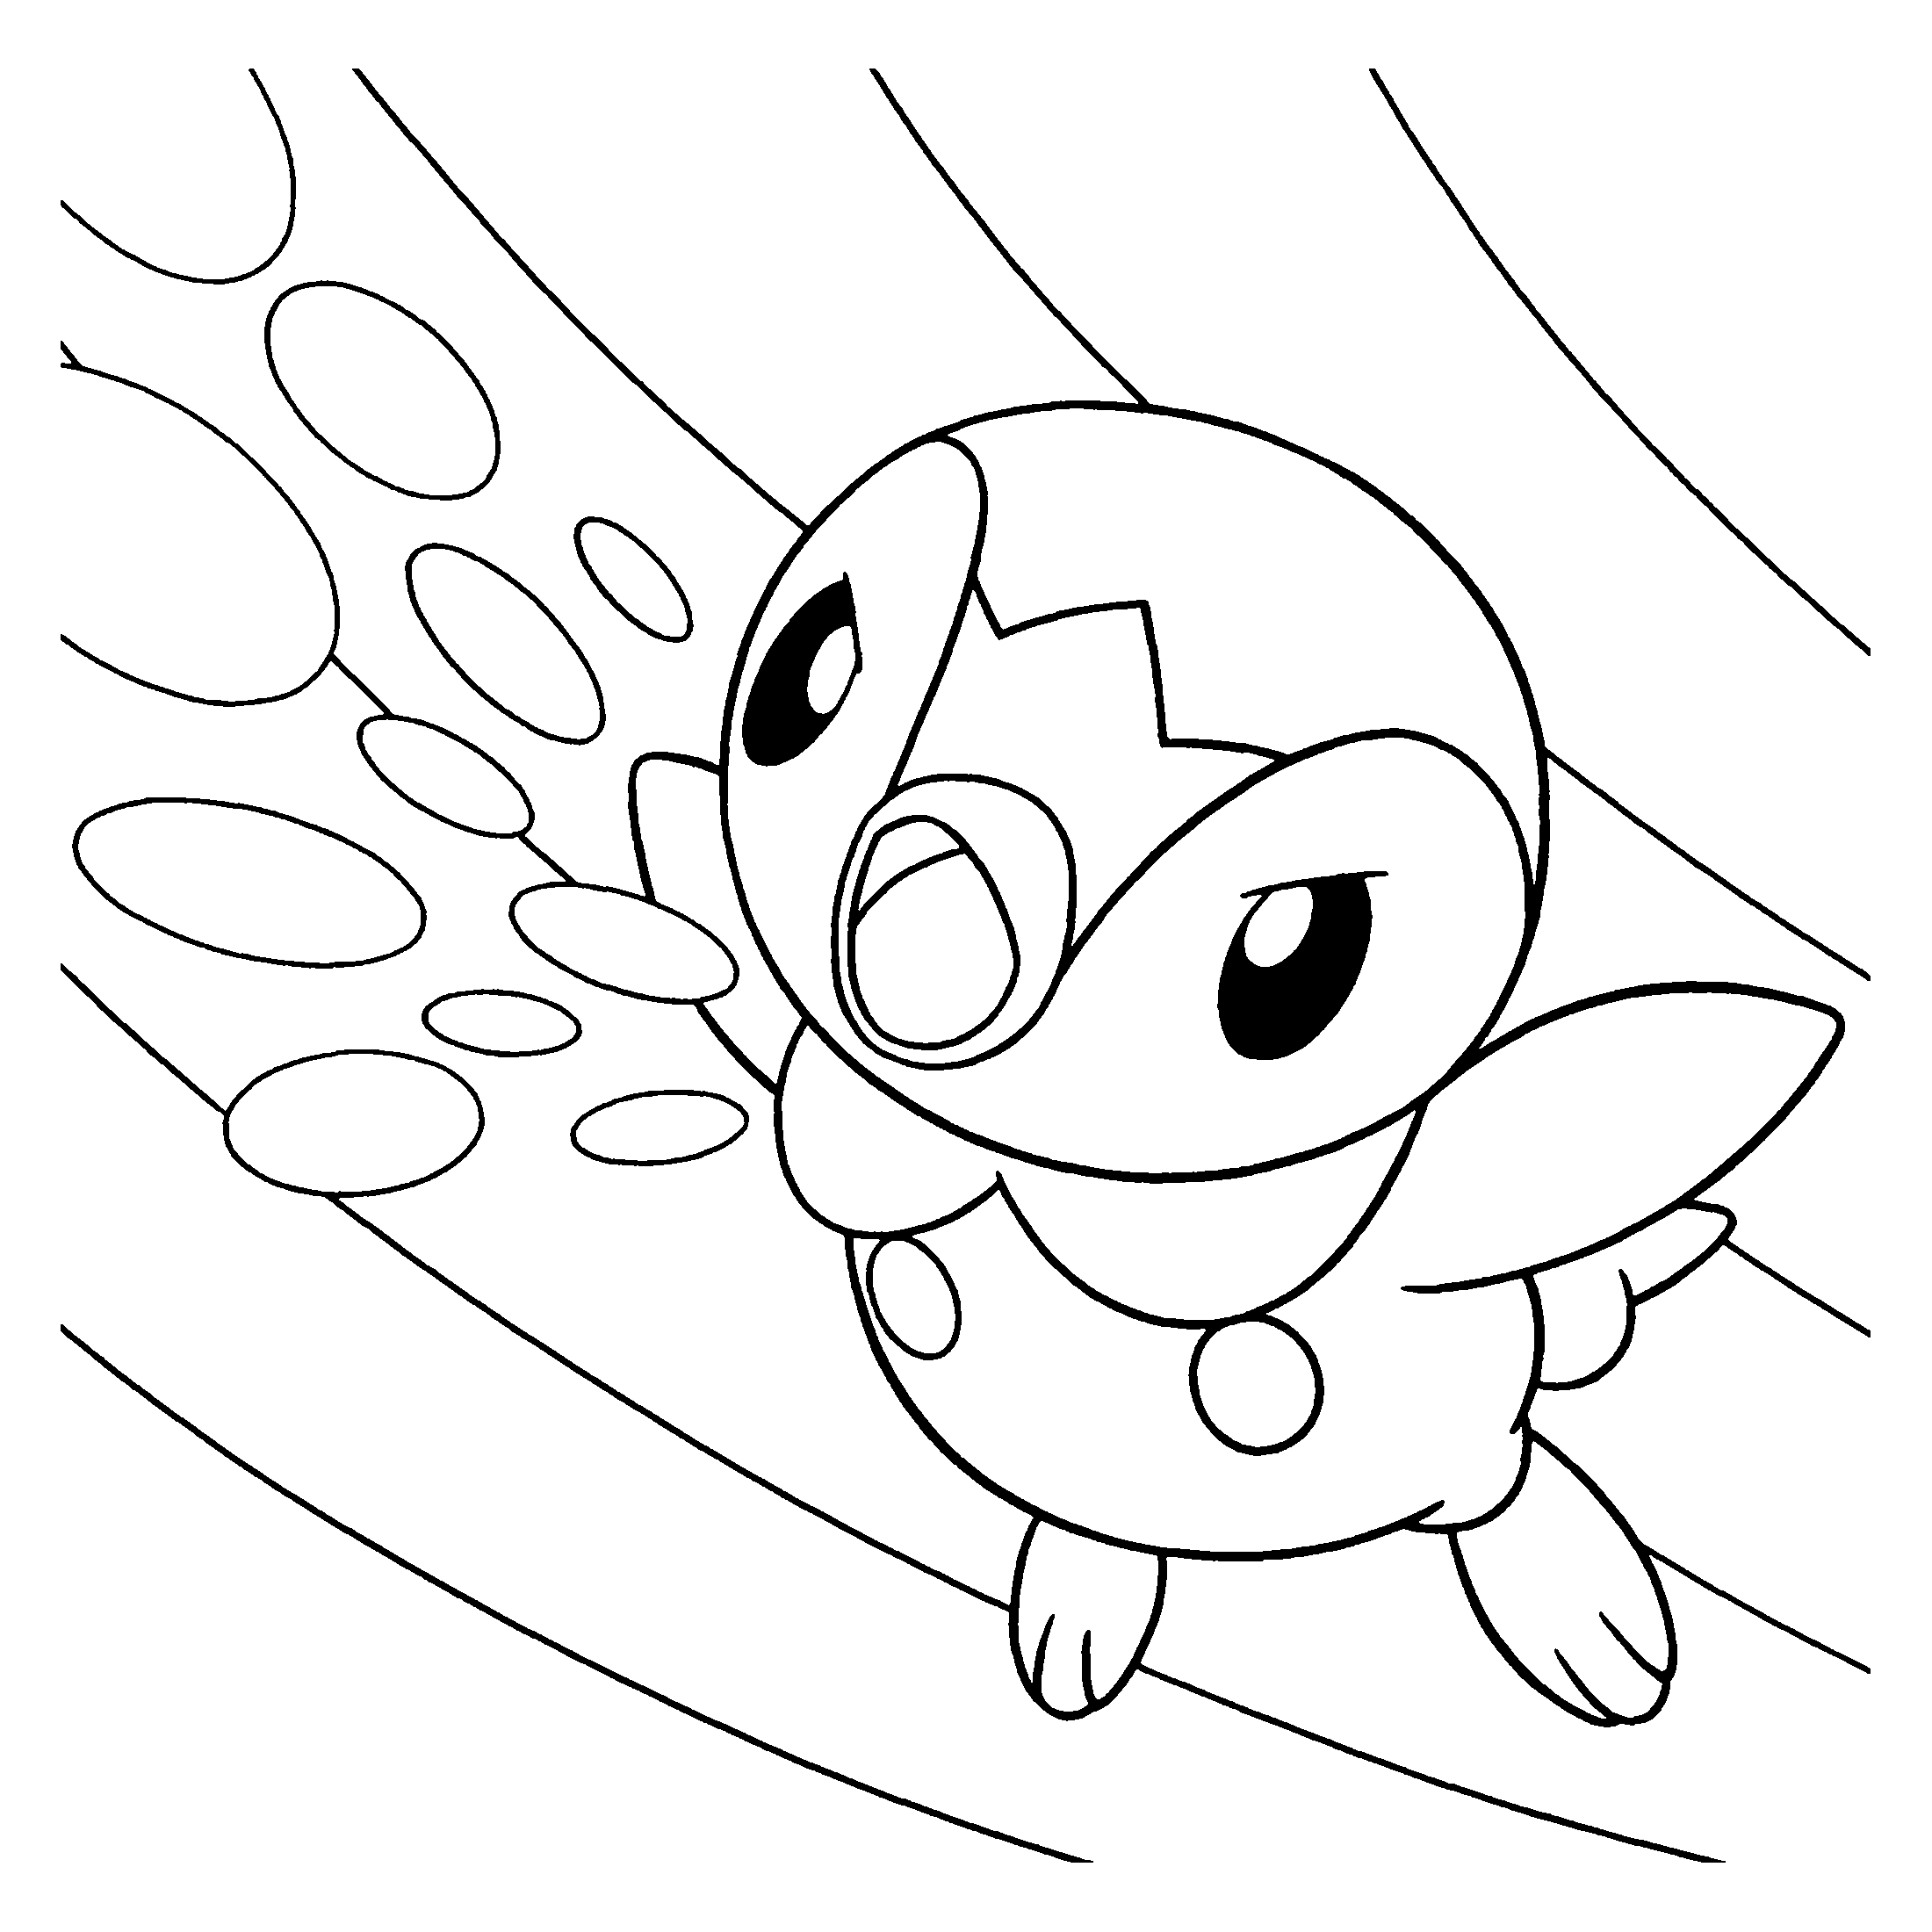 Pokemon Mewtu Ausmalbilder : Pokemon Diamond Pearl Coloring Pages Coloringpages1001 Com